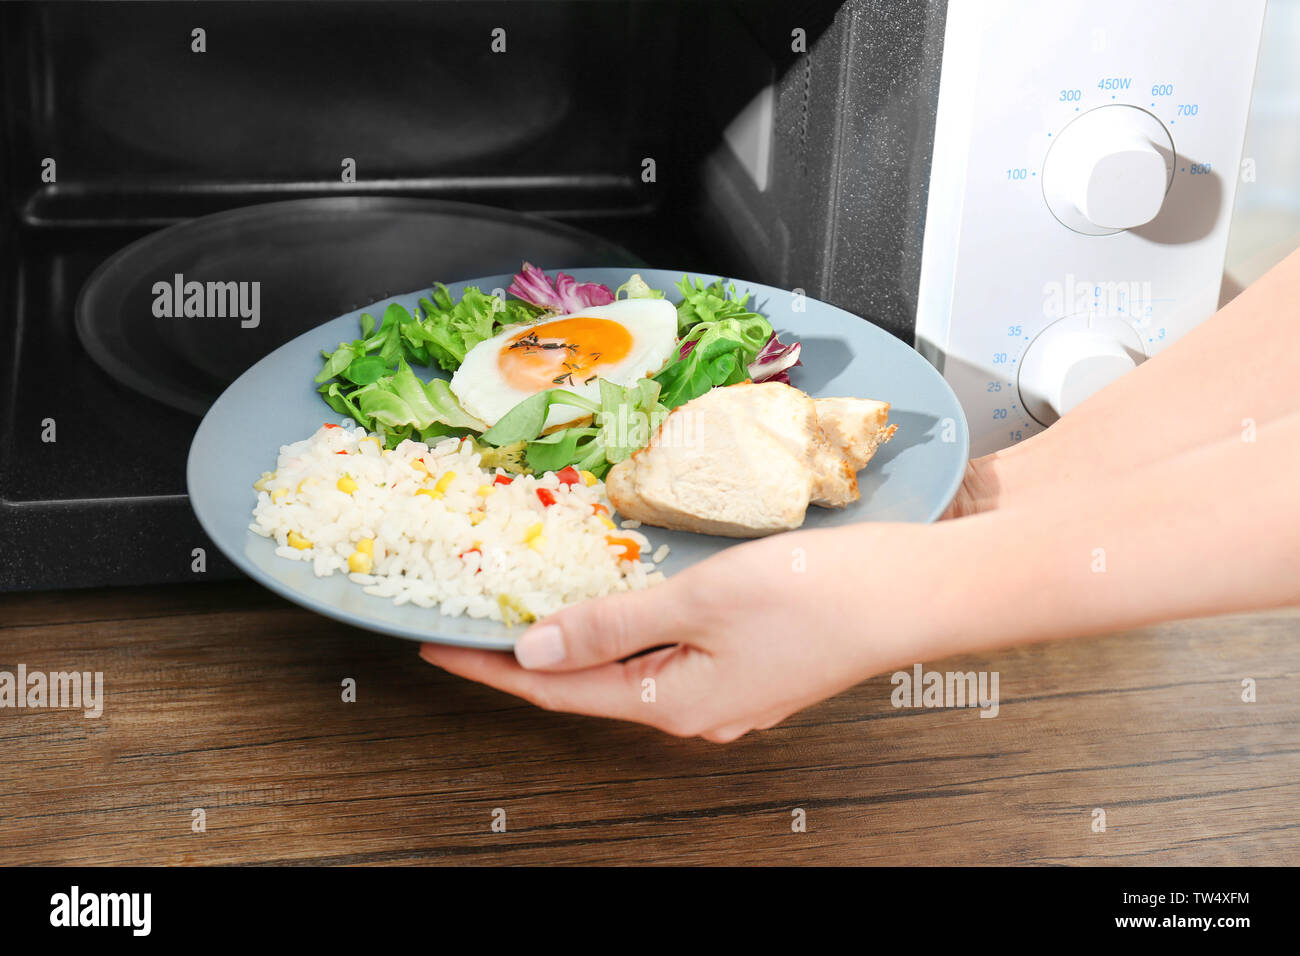 Woman putting plate with nutritious food into microwave in kitchen - Stock Image